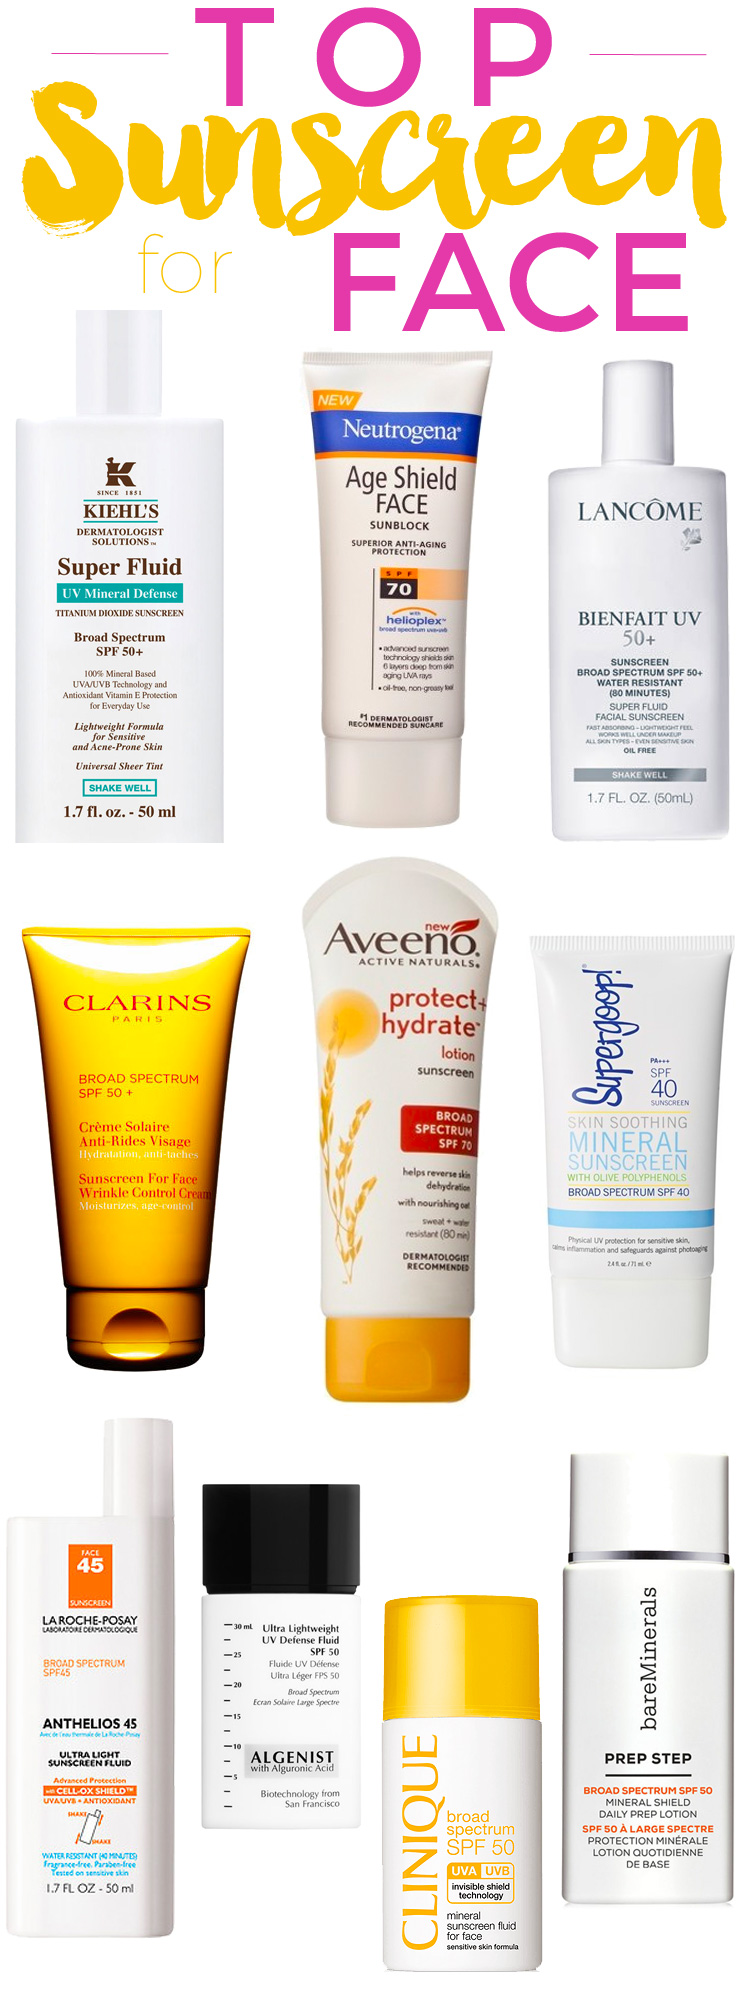 TOP SUNSCREEN FOR FACE